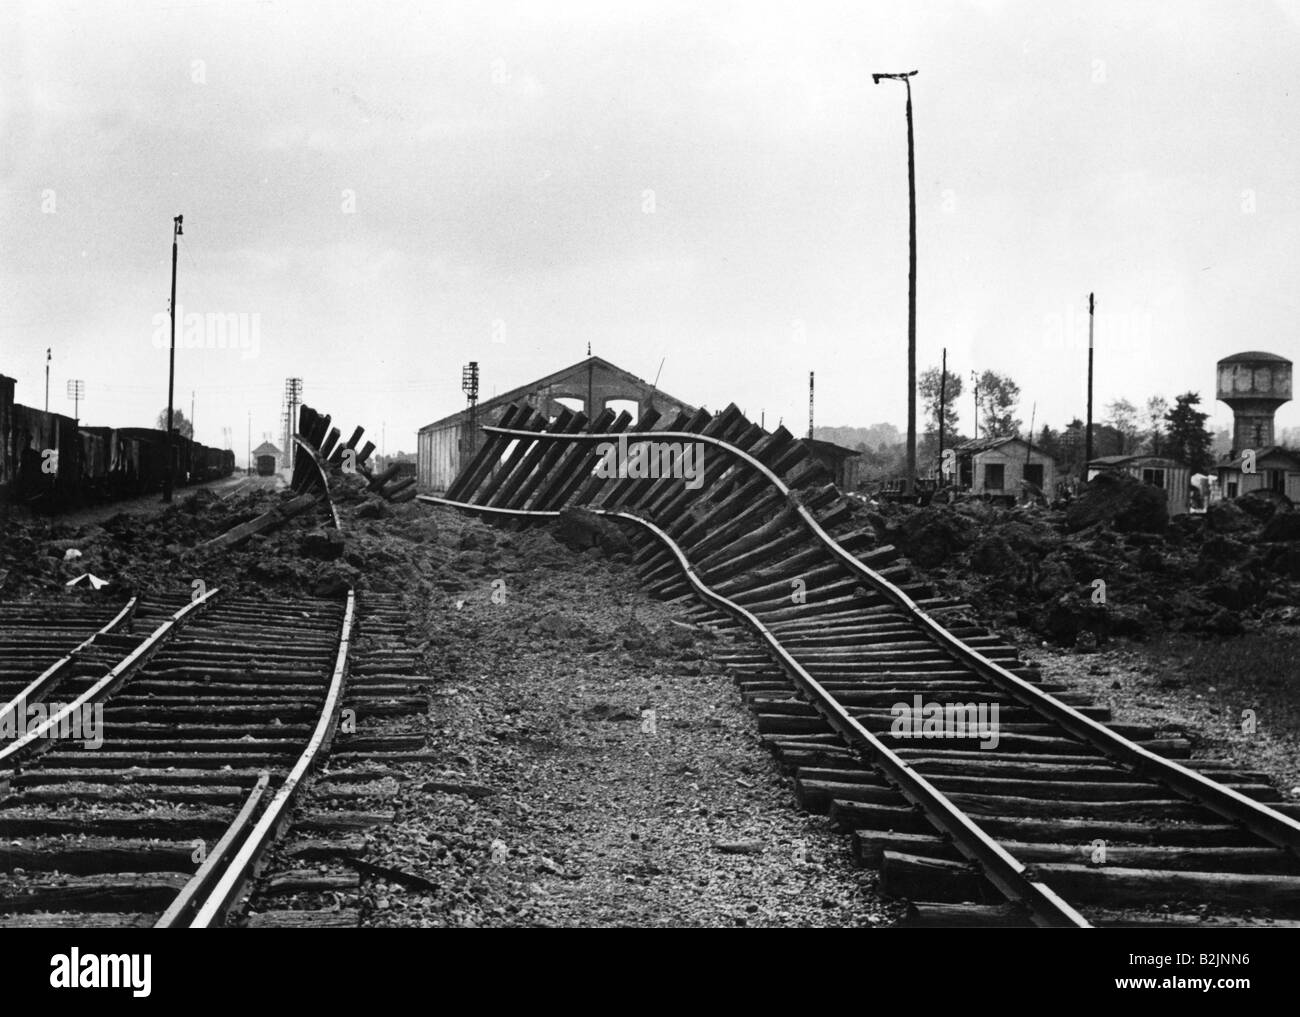 events, Second World War / WWII, France, destroyed rails after German air raid, 13.5.1940, Additional-Rights-Clearances - Stock Image